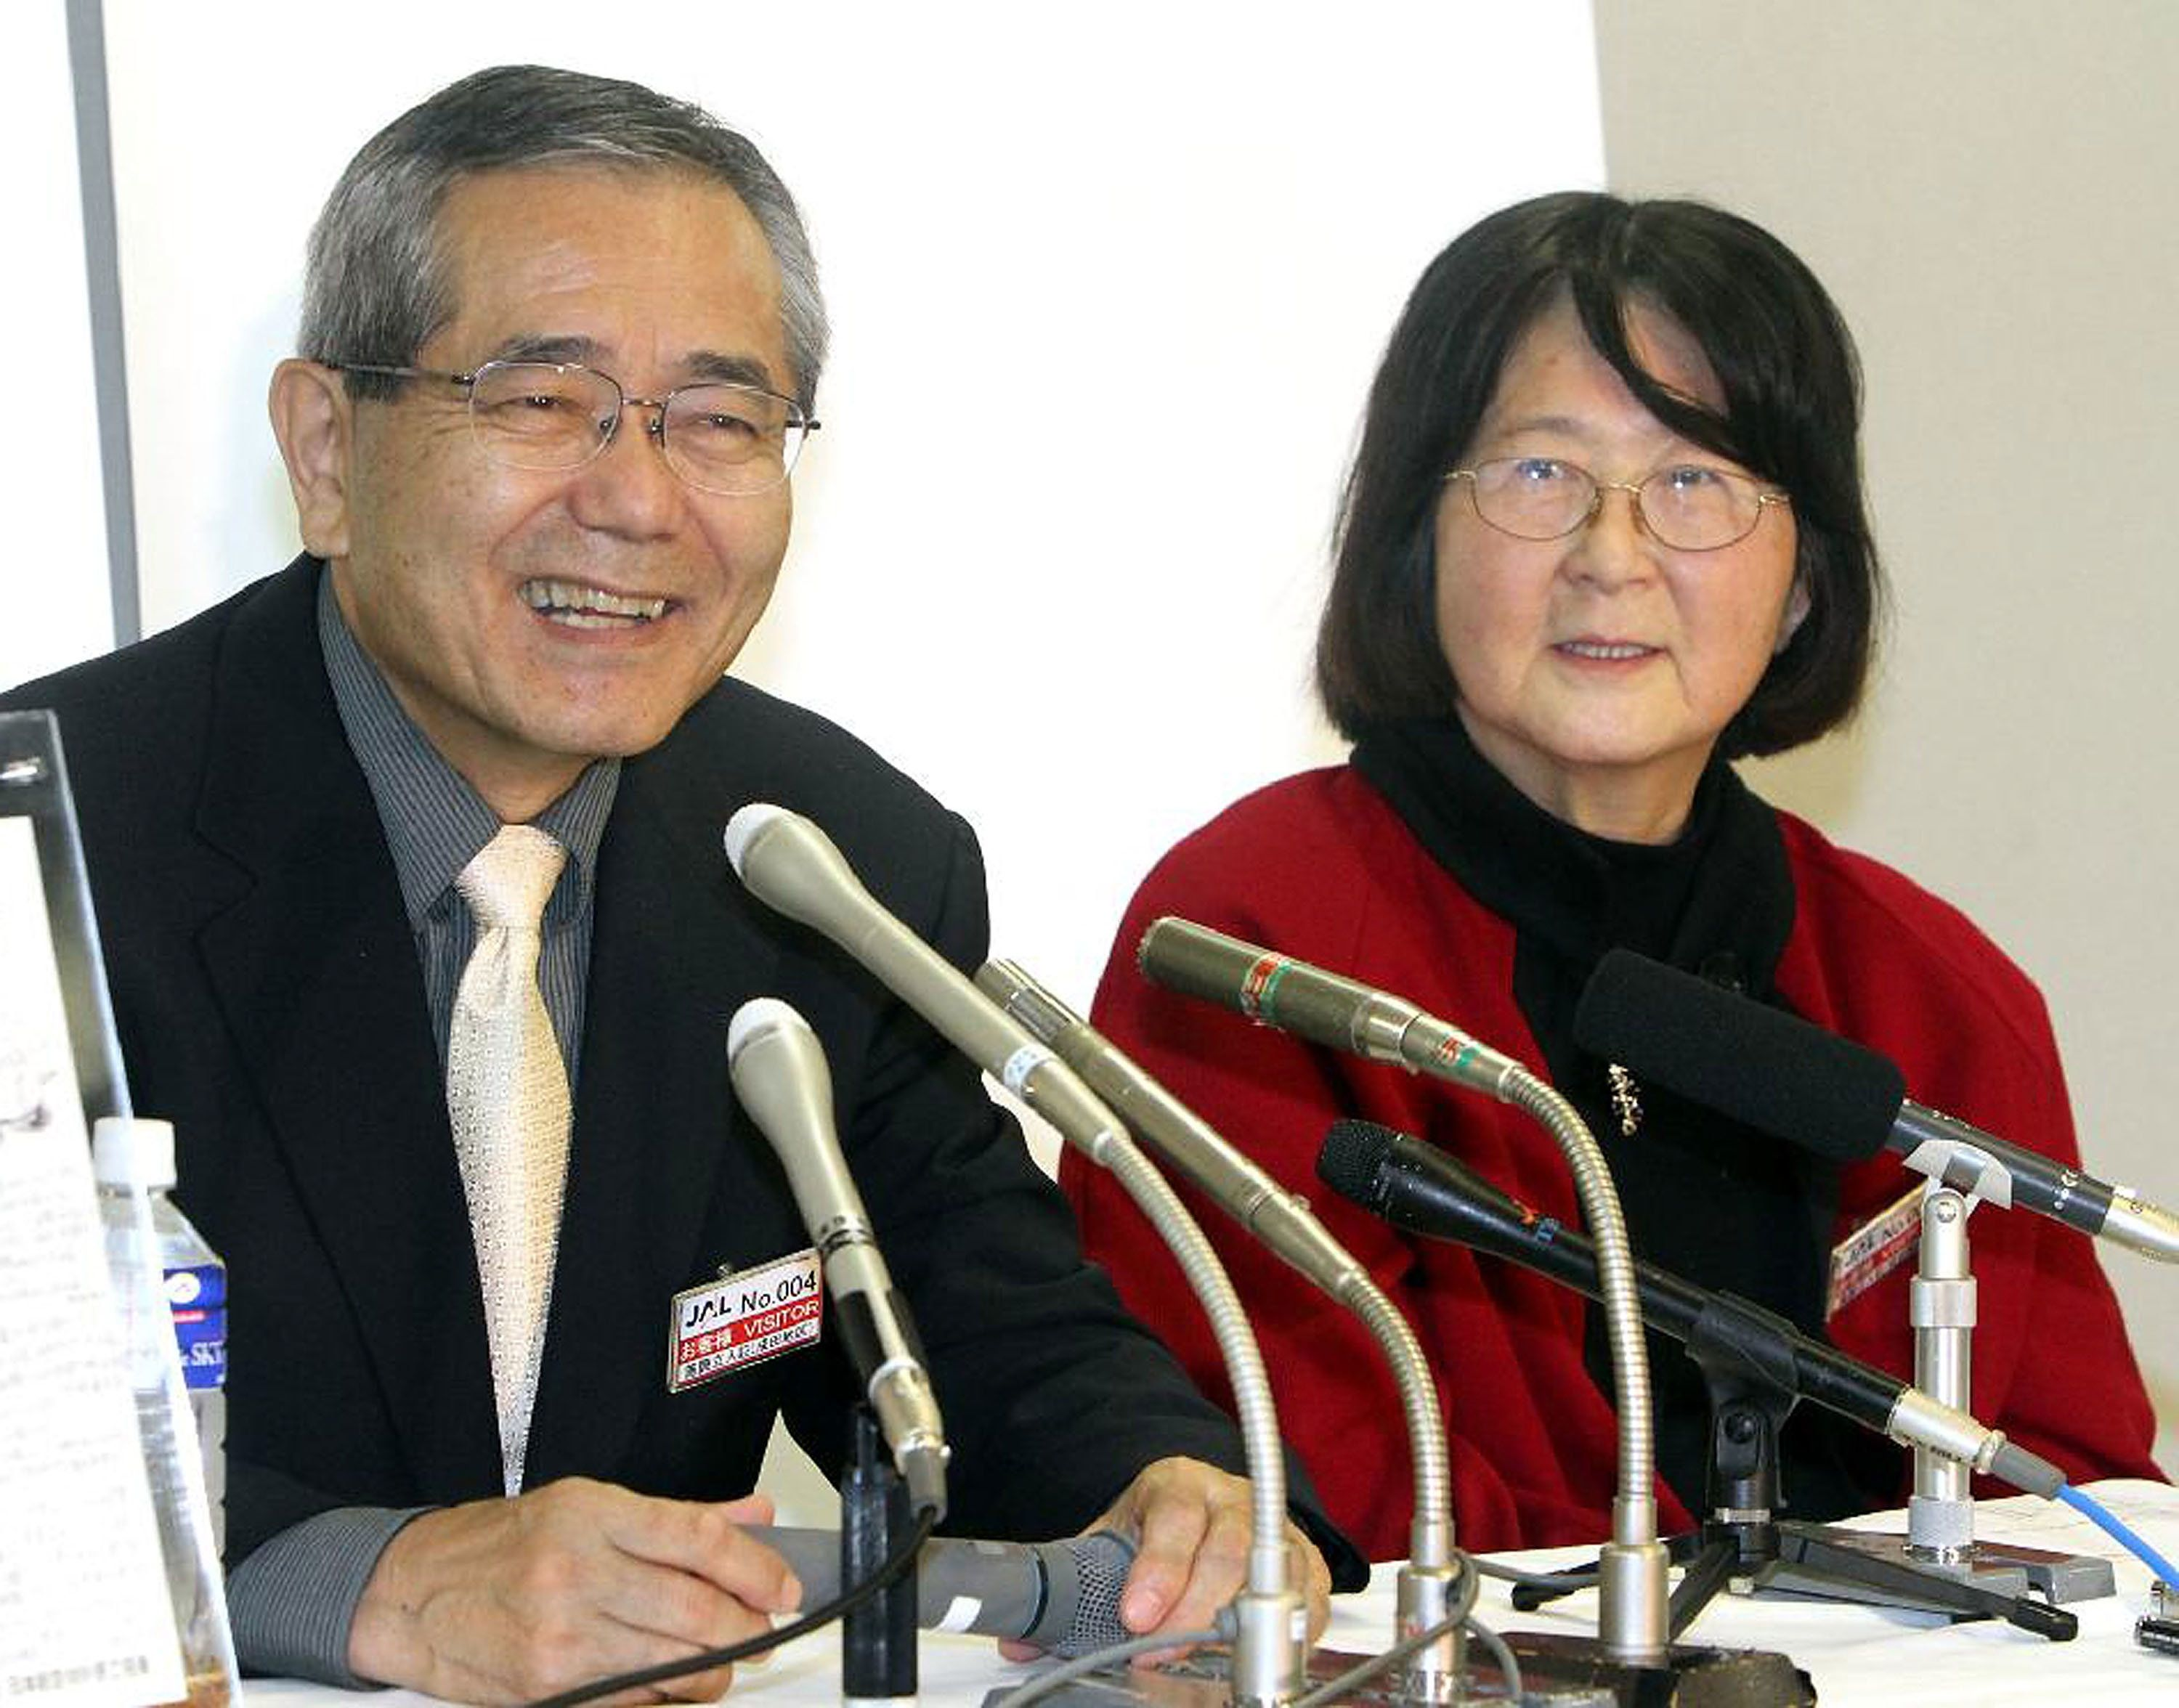 NARITA, JAPAN - OCTOBER 31:  (JAPANESE NEWSPAPERS OUT) Chemistry Nobel Prize winner Eiichi Negishi and his wife Sumire attend a press conference upon his arrival to Narita International Airport on October 31, 2010 in Narita, Chiba, Japan. Negishi, a researcher at Purdue University, along with Richard F. Heck and Akira Suzuki, won the Nobel for developing palladium-catalyzed cross coupling, which allows chemists to create complex chemicals.  (Photo by Sankei via Getty Images)